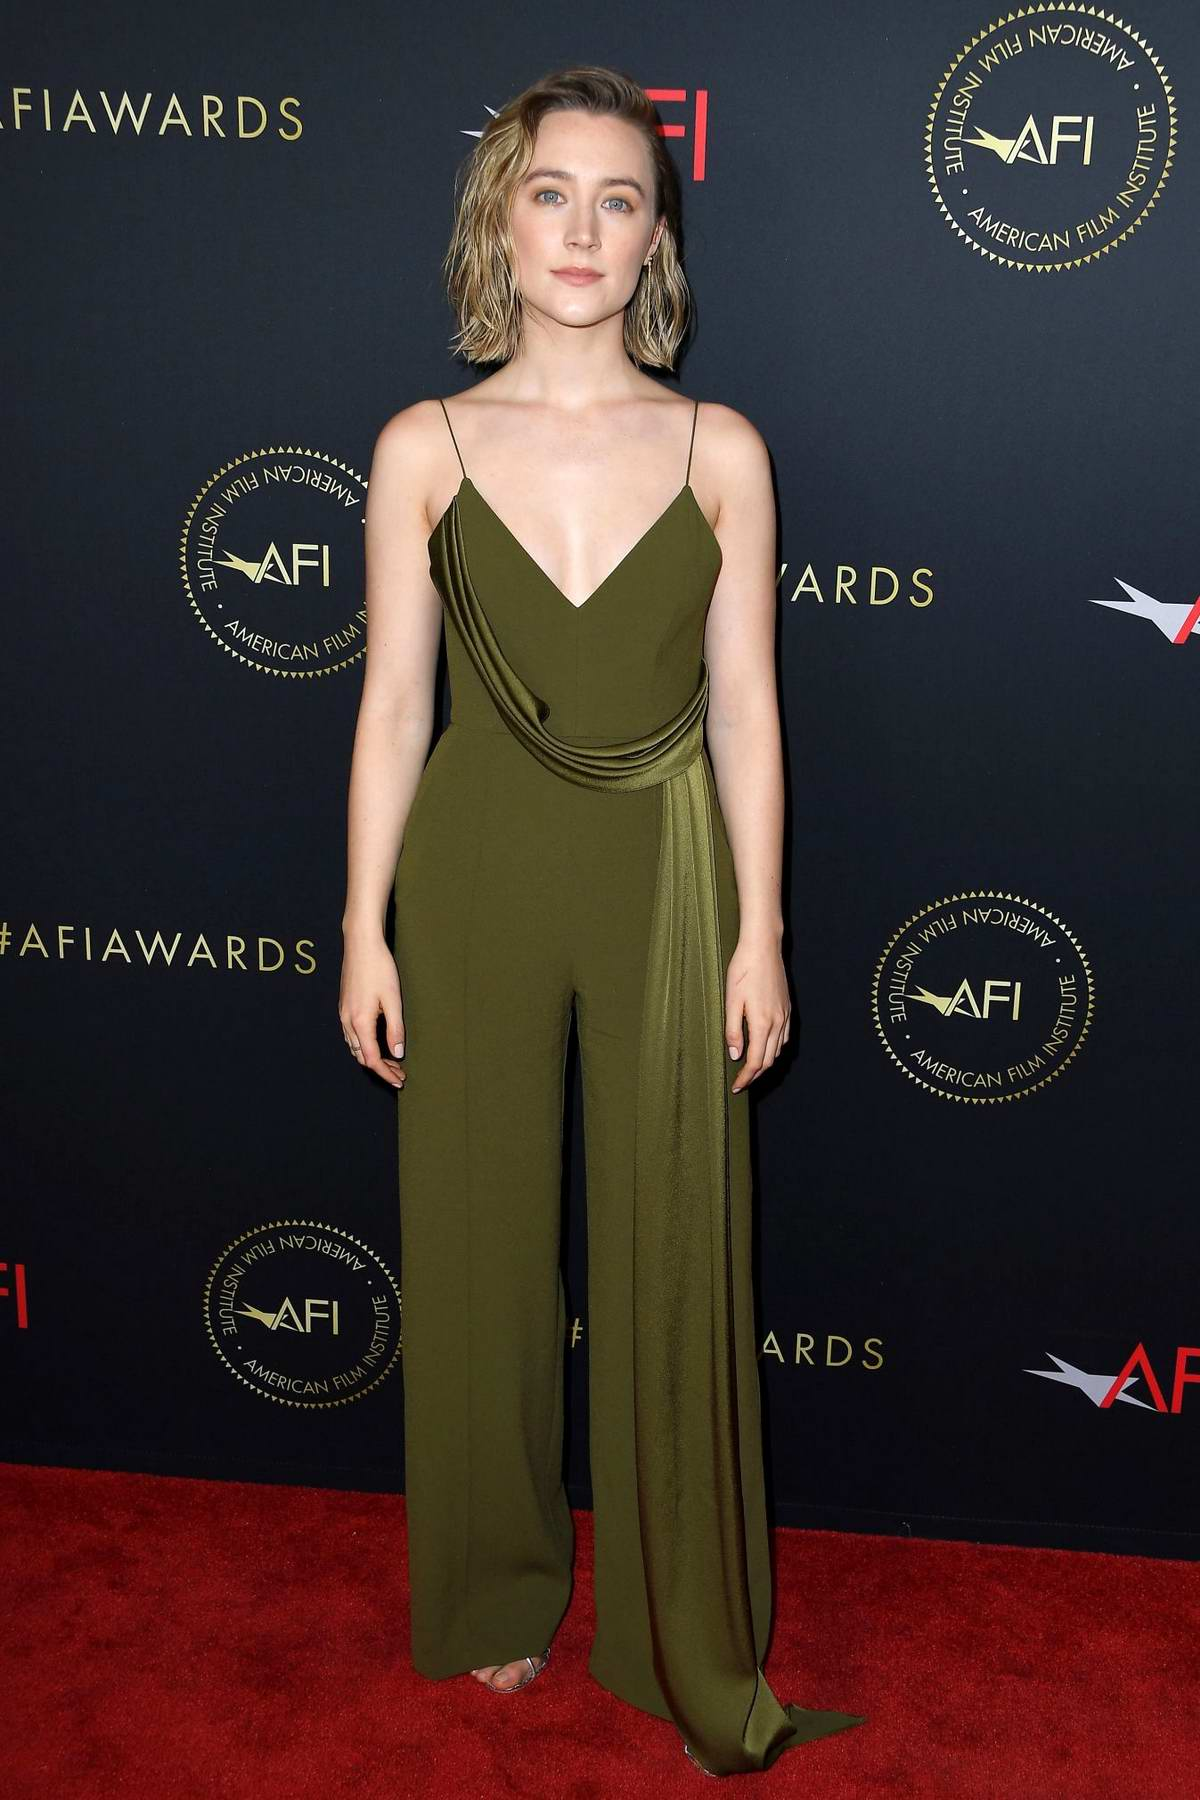 Saoirse Ronan attends the 20th Annual AFI Awards at Four Seasons Hotel Los Angeles in Beverly Hills, California